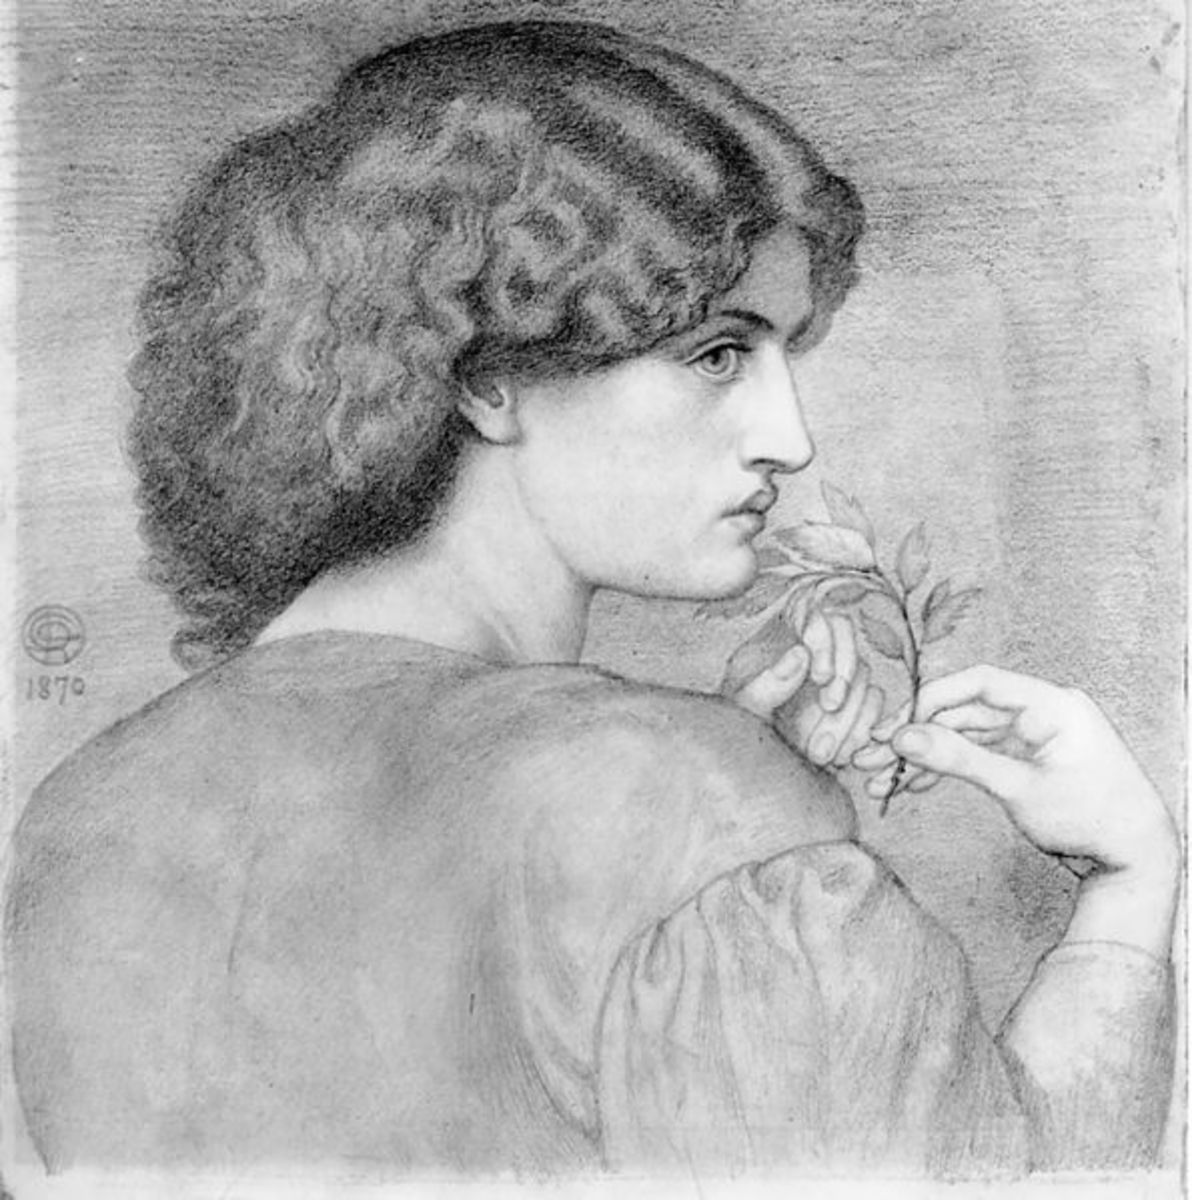 The Roseleaf by Dante Gabriel Rossetti.  Depicting Jane Morris with whom Rossetti was in love. The remote, melancholy tenor of the image seems to foreshadow their doomed affair.